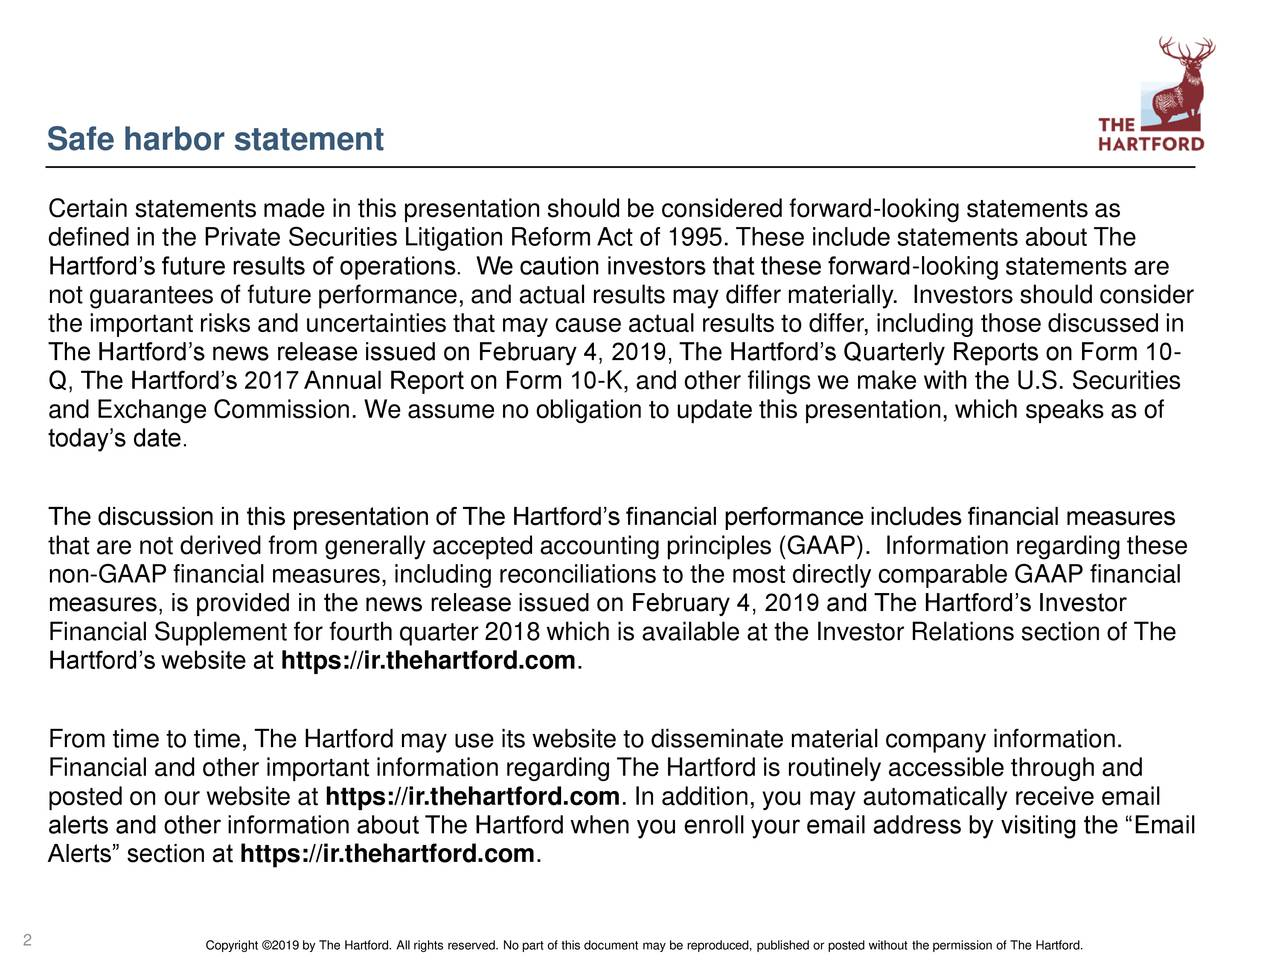 """Certain statements made in this presentation should be considered forward-looking statements as defined in the Private Securities Litigation Reform Act of 1995. These include statements about The Hartford's future results of operations. We caution investors that these forward-looking statements are not guarantees of future performance, and actual results may differ materially. Investors should consider the important risks and uncertainties that may cause actual results to differ, including those discussed in The Hartford's news release issued on February 4, 2019, The Hartford's Quarterly Reports on Form 10- Q, The Hartford's 2017 Annual Report on Form 10-K, and other filings we make with the U.S. Securities and Exchange Commission. We assume no obligation to update this presentation, which speaks as of today's date. The discussion in this presentation of The Hartford's financial performance includes financial measures that are not derived from generally accepted accounting principles (GAAP). Information regarding these non-GAAP financial measures, including reconciliations to the most directly comparable GAAP financial measures, is provided in the news release issued on February 4, 2019 and The Hartford's Investor Financial Supplement for fourth quarter 2018 which is available at the Investor Relations section of The Hartford's website at https://ir.thehartford.com. From time to time, The Hartford may use its website to disseminate material company information. Financial and other important information regarding The Hartford is routinely accessible through and posted on our website at https://ir.thehartford.com. In addition, you may automatically receive email alerts and other information about The Hartford when you enroll your email address by visiting the """"Email Alerts"""" section at https://ir.thehartford.com. 2"""